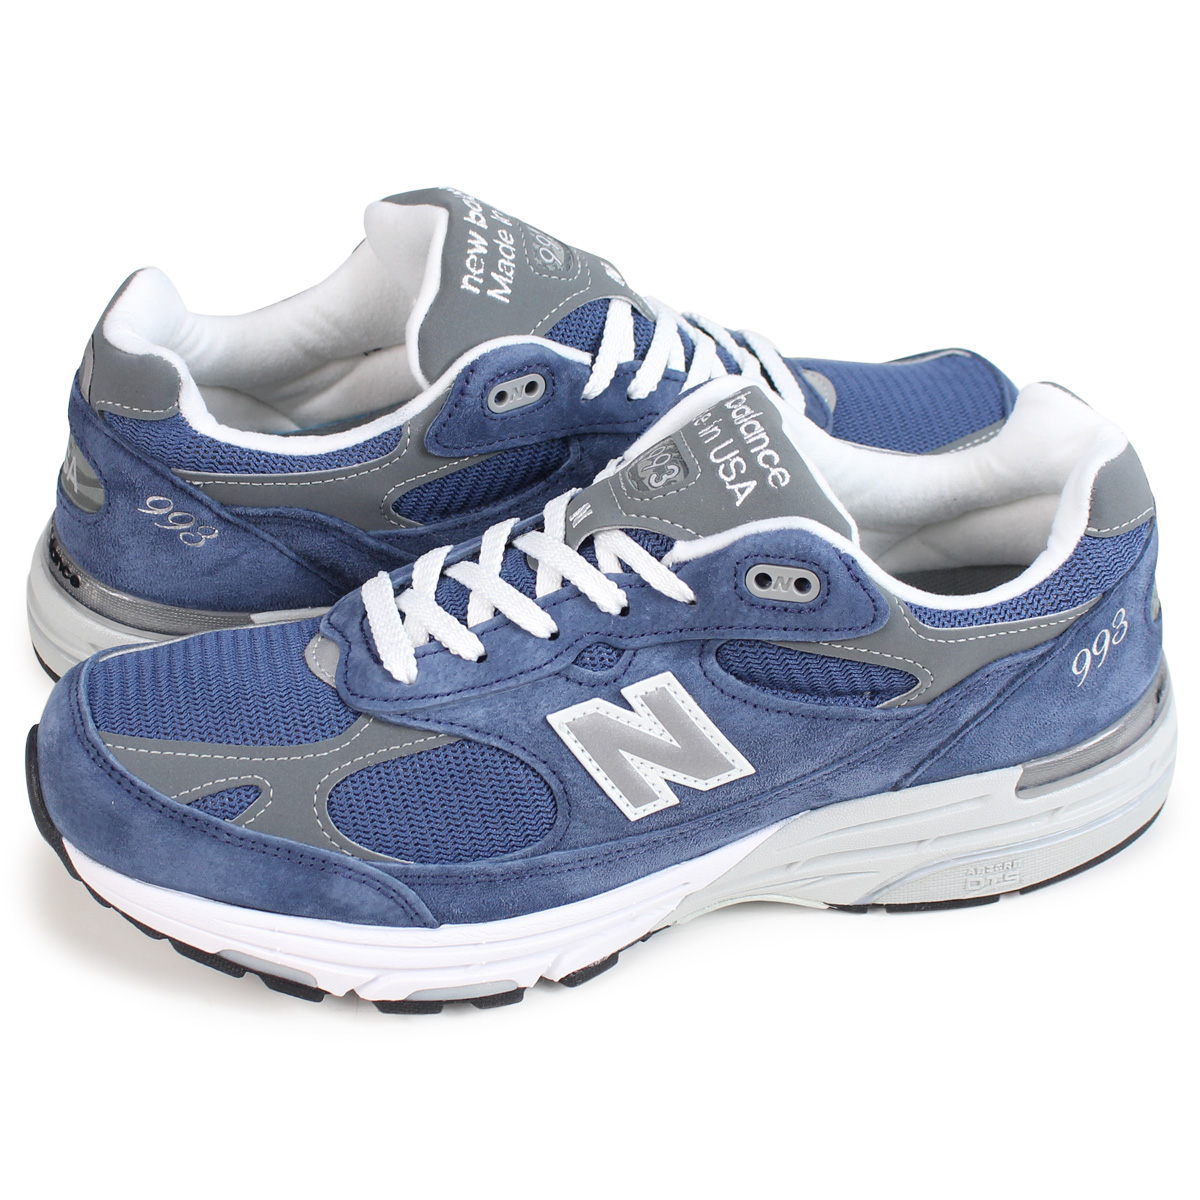 nouveaux styles 397be 5c360 new balance MR993VI New Balance 993 men's sneakers D Wise MADE IN USA blue  [1810]